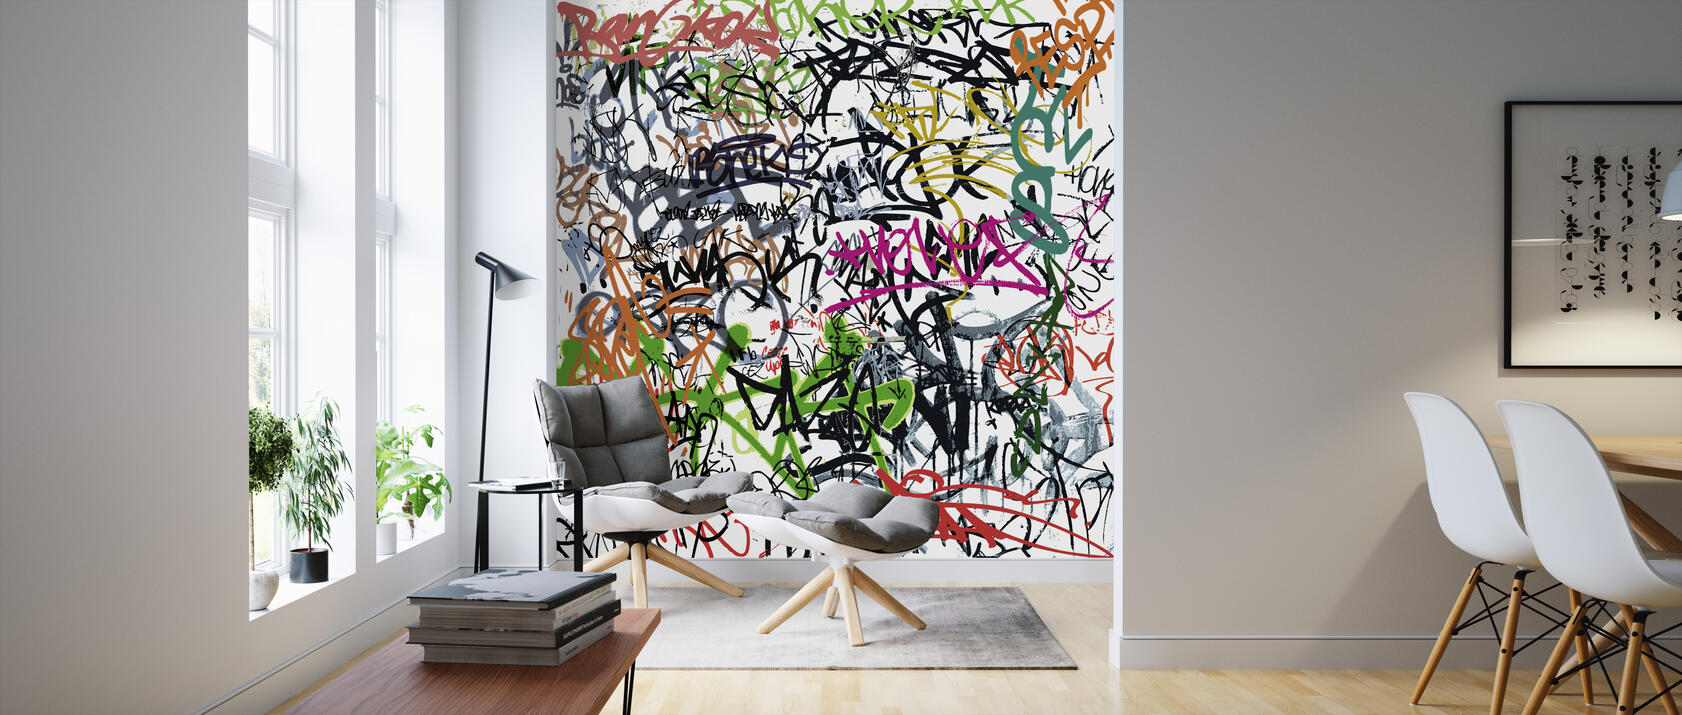 graffiti tagging beliebte fototapete photowall. Black Bedroom Furniture Sets. Home Design Ideas